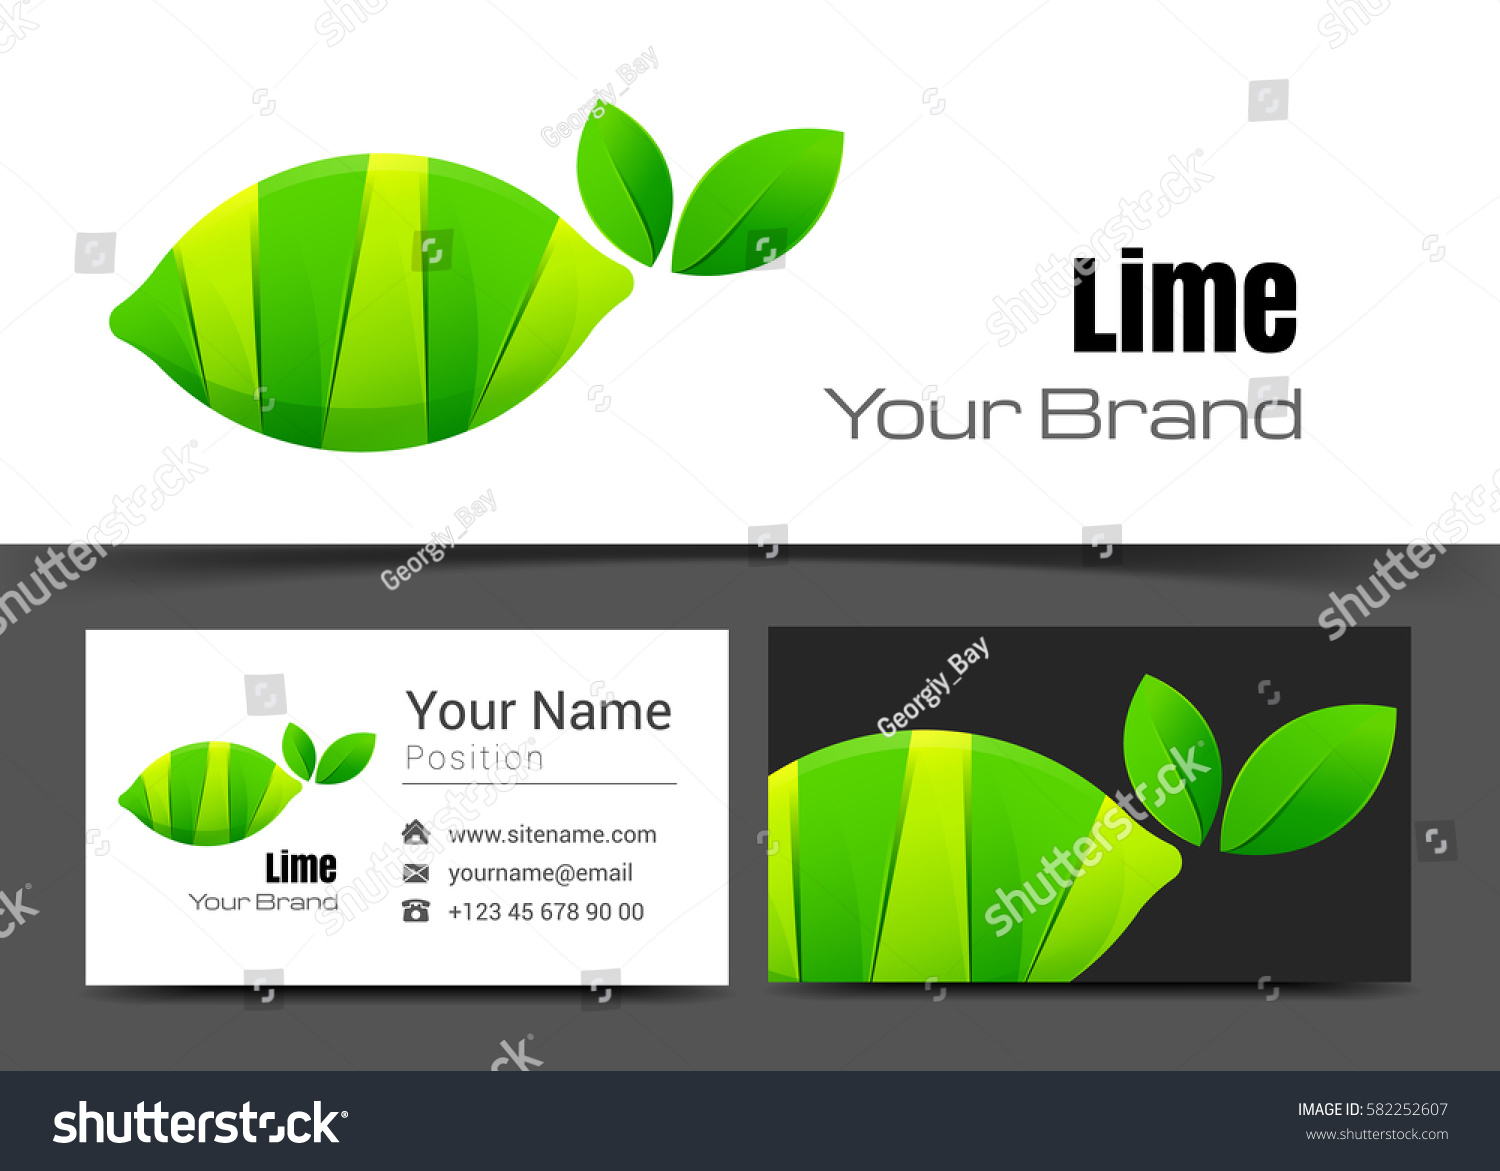 Lime corporate logo business card sign stock vector 582252607 lime corporate logo and business card sign template creative design with colorful logotype visual identity magicingreecefo Images